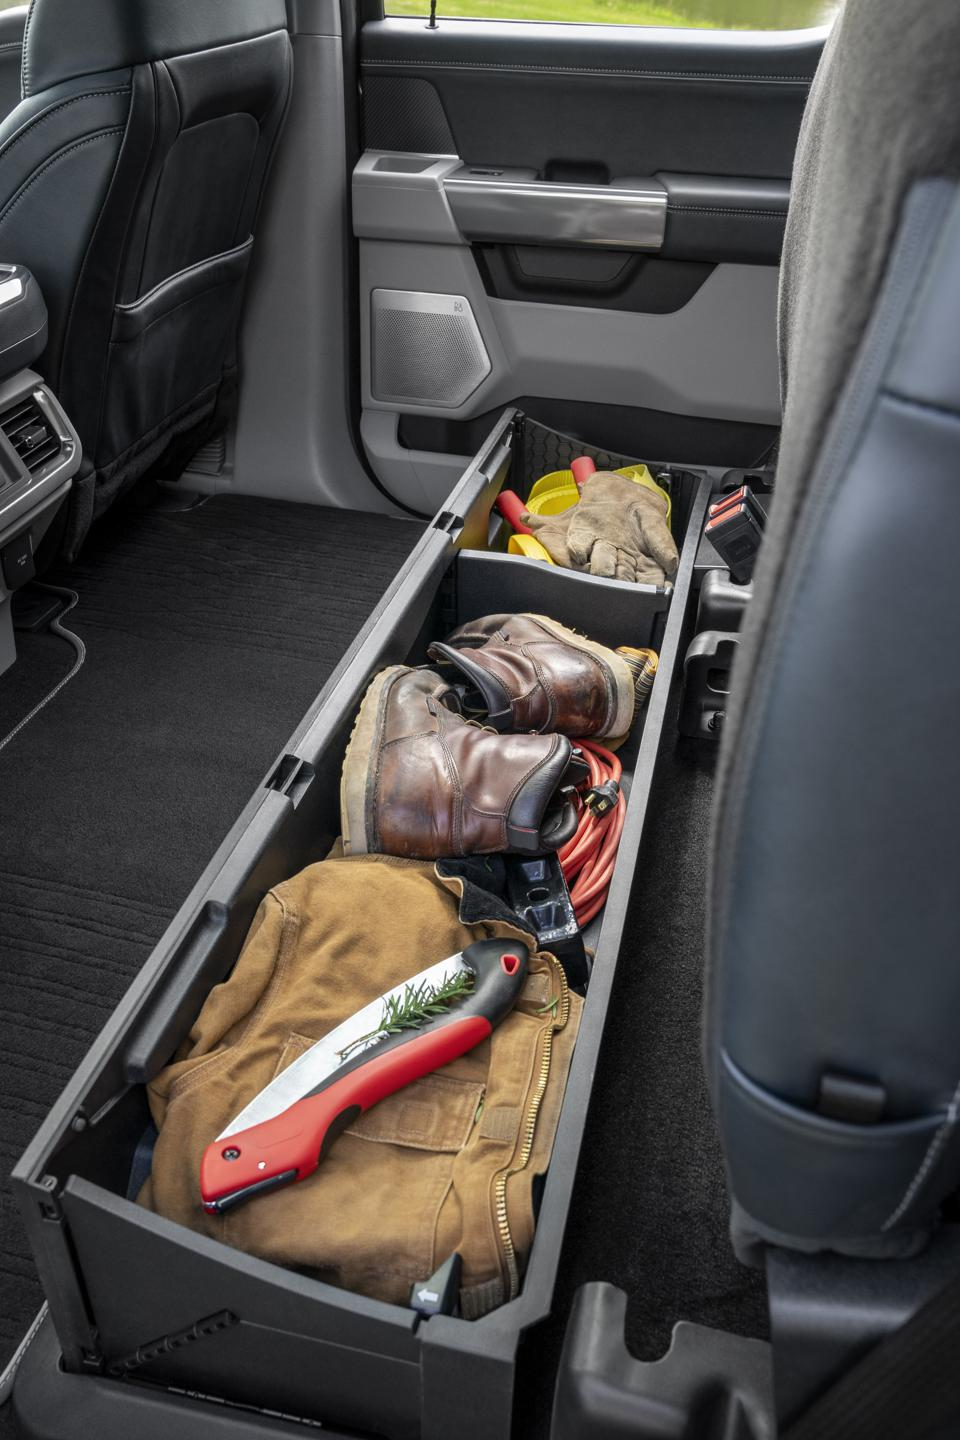 2021 Ford F-150 pop up rear seat storage. Rear seat can be locked when folded down